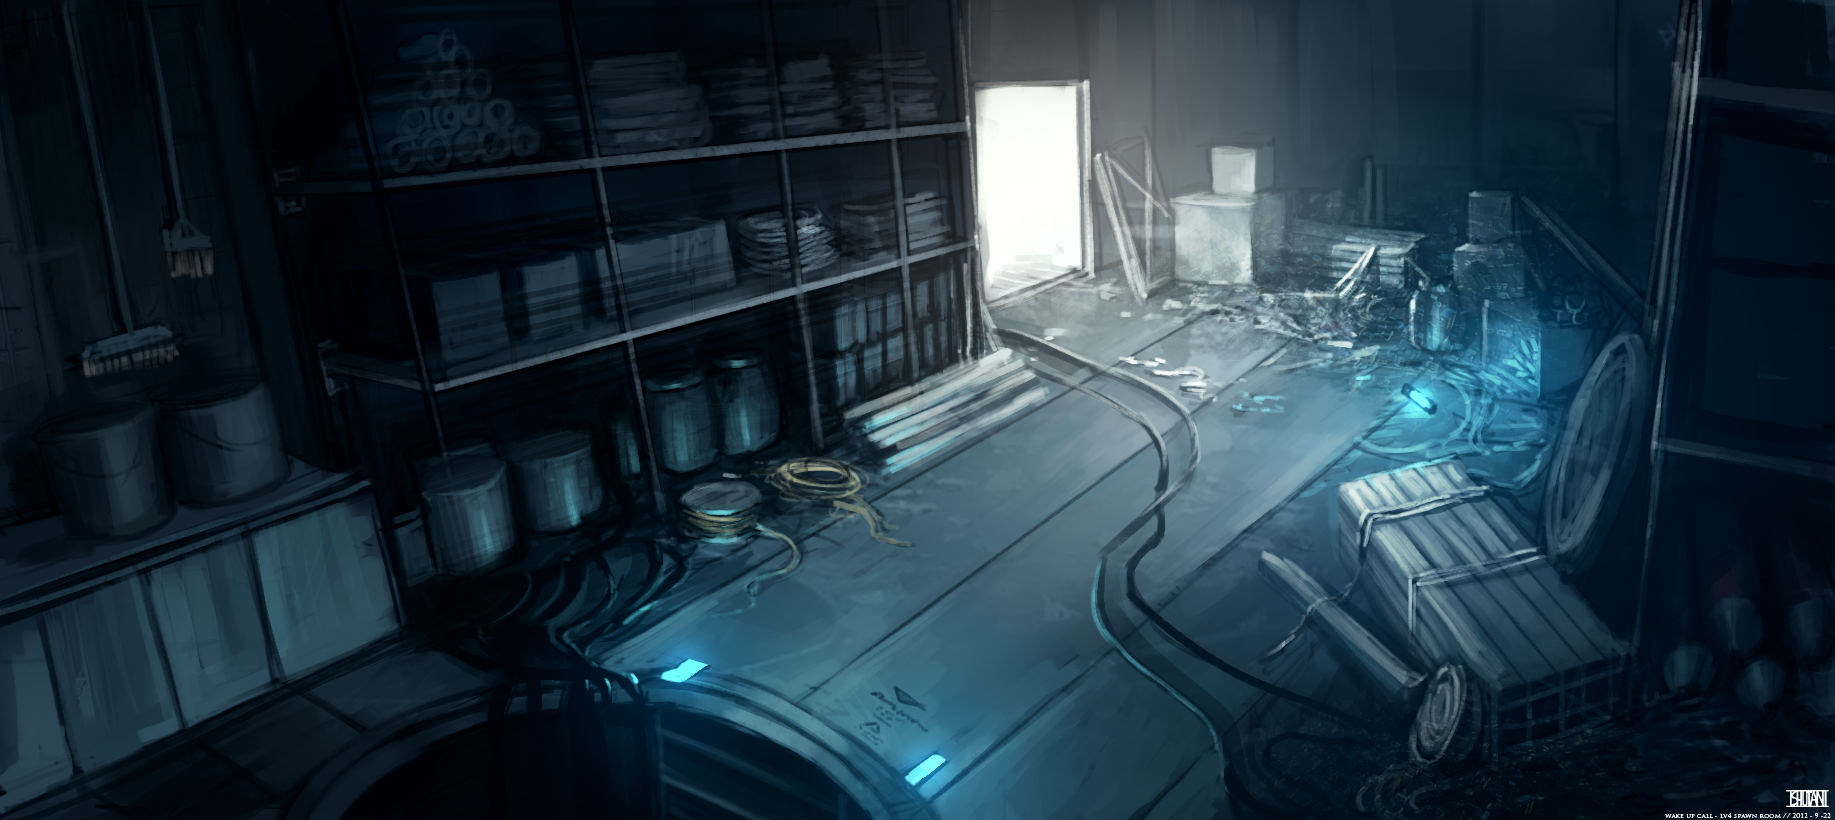 sci fi room concept art room concept ffow picture 2d illustration